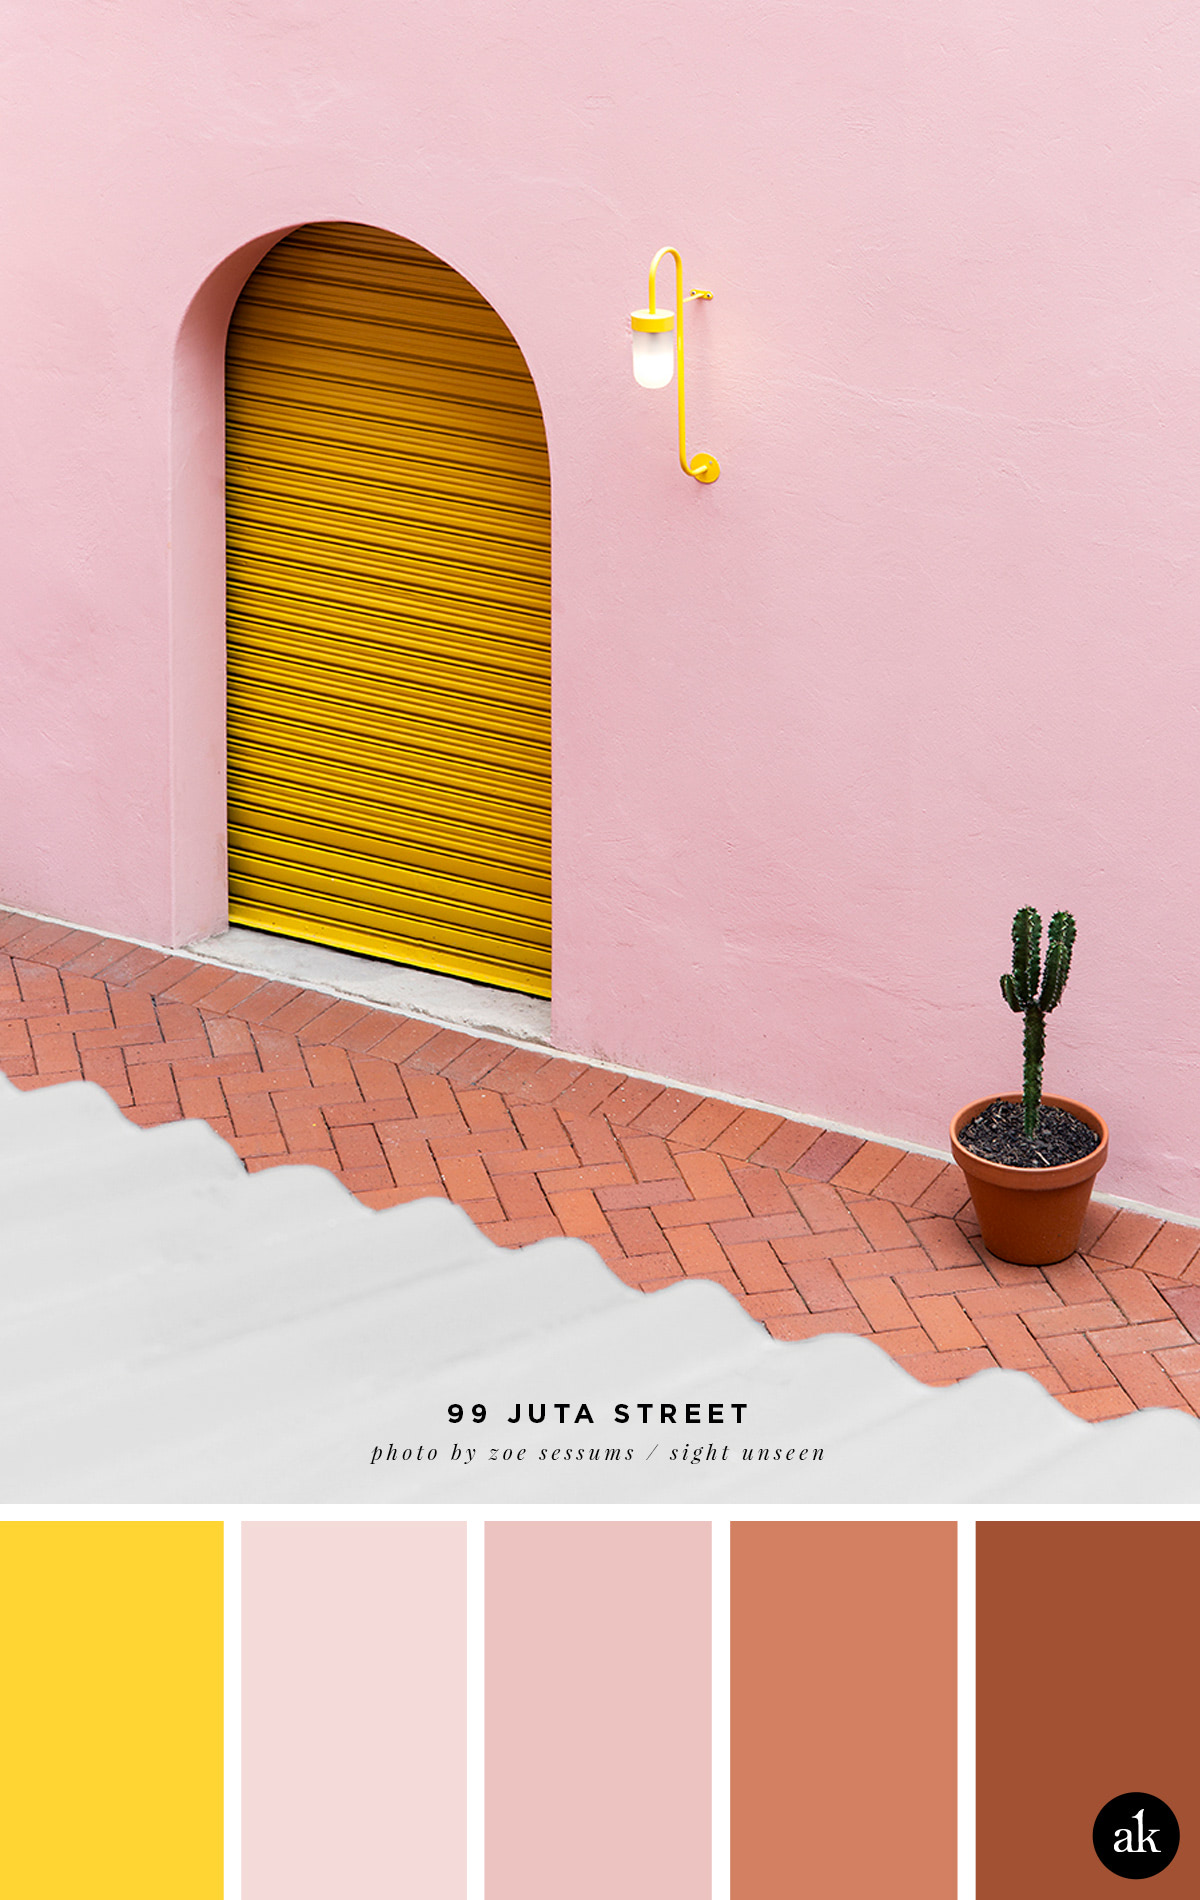 a pink and yellow color palette // yellow, pink, terra cotta // 99 Juta Street photographed by Zoe Sessums